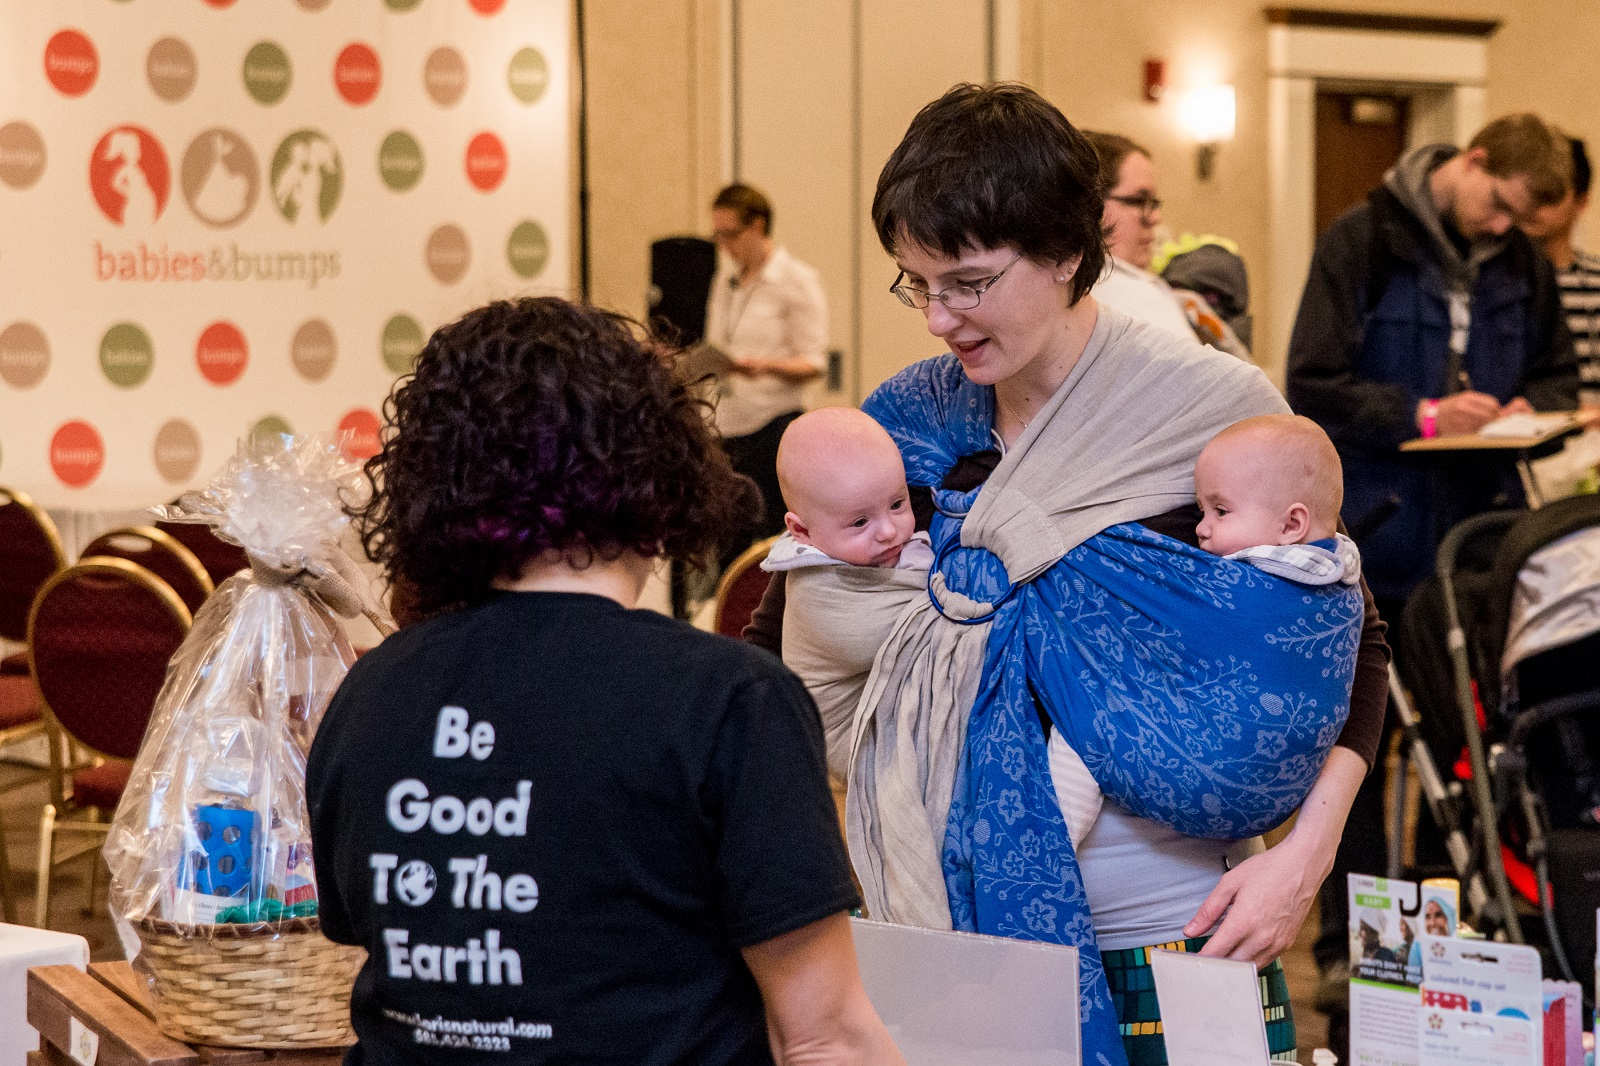 Babies & Bumps will bring to Buffalo next weekend nearly 60 organizations that cater to pregnant women, new parents and their babies.  (Stephen S Reardon Photography)